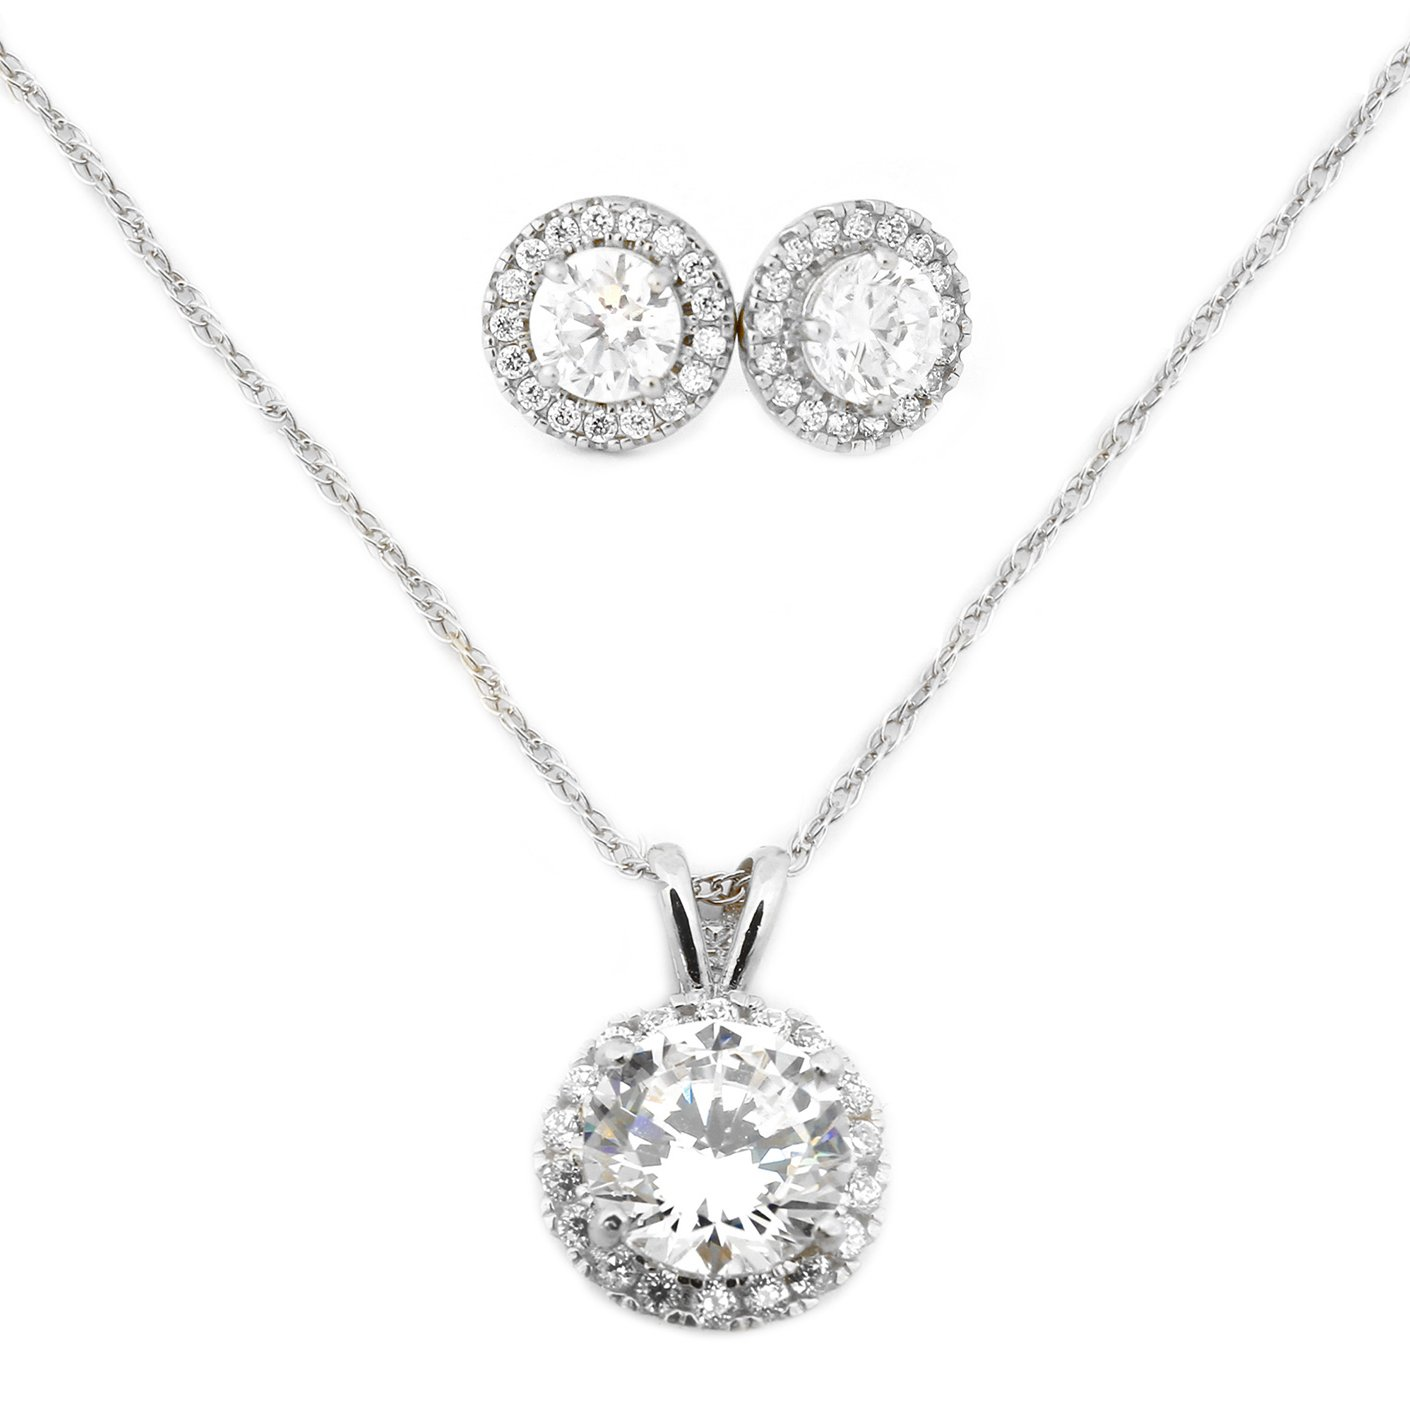 14k White Gold Cubic Zirconia Halo Necklace and Earrings Set - 18''